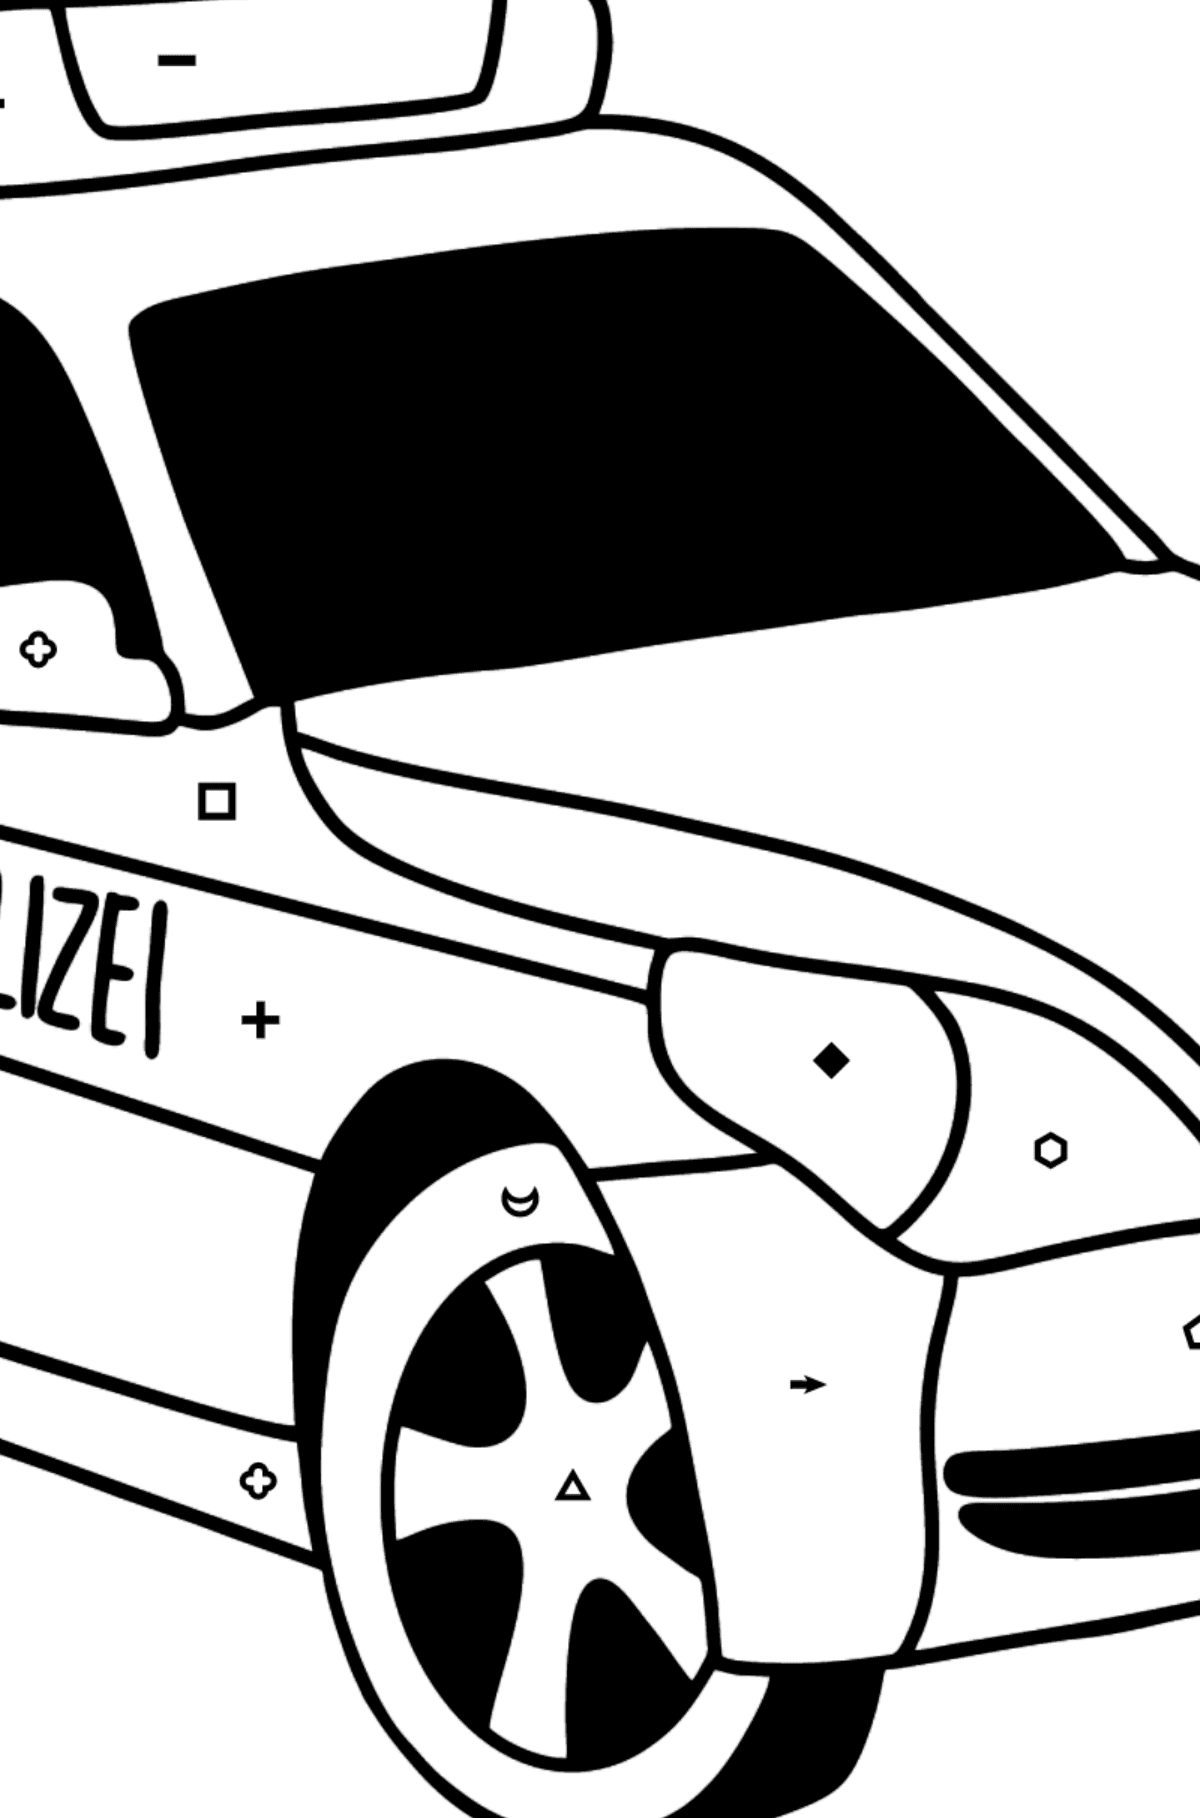 Police Car in Germany coloring page - Coloring by Symbols and Geometric Shapes for Kids